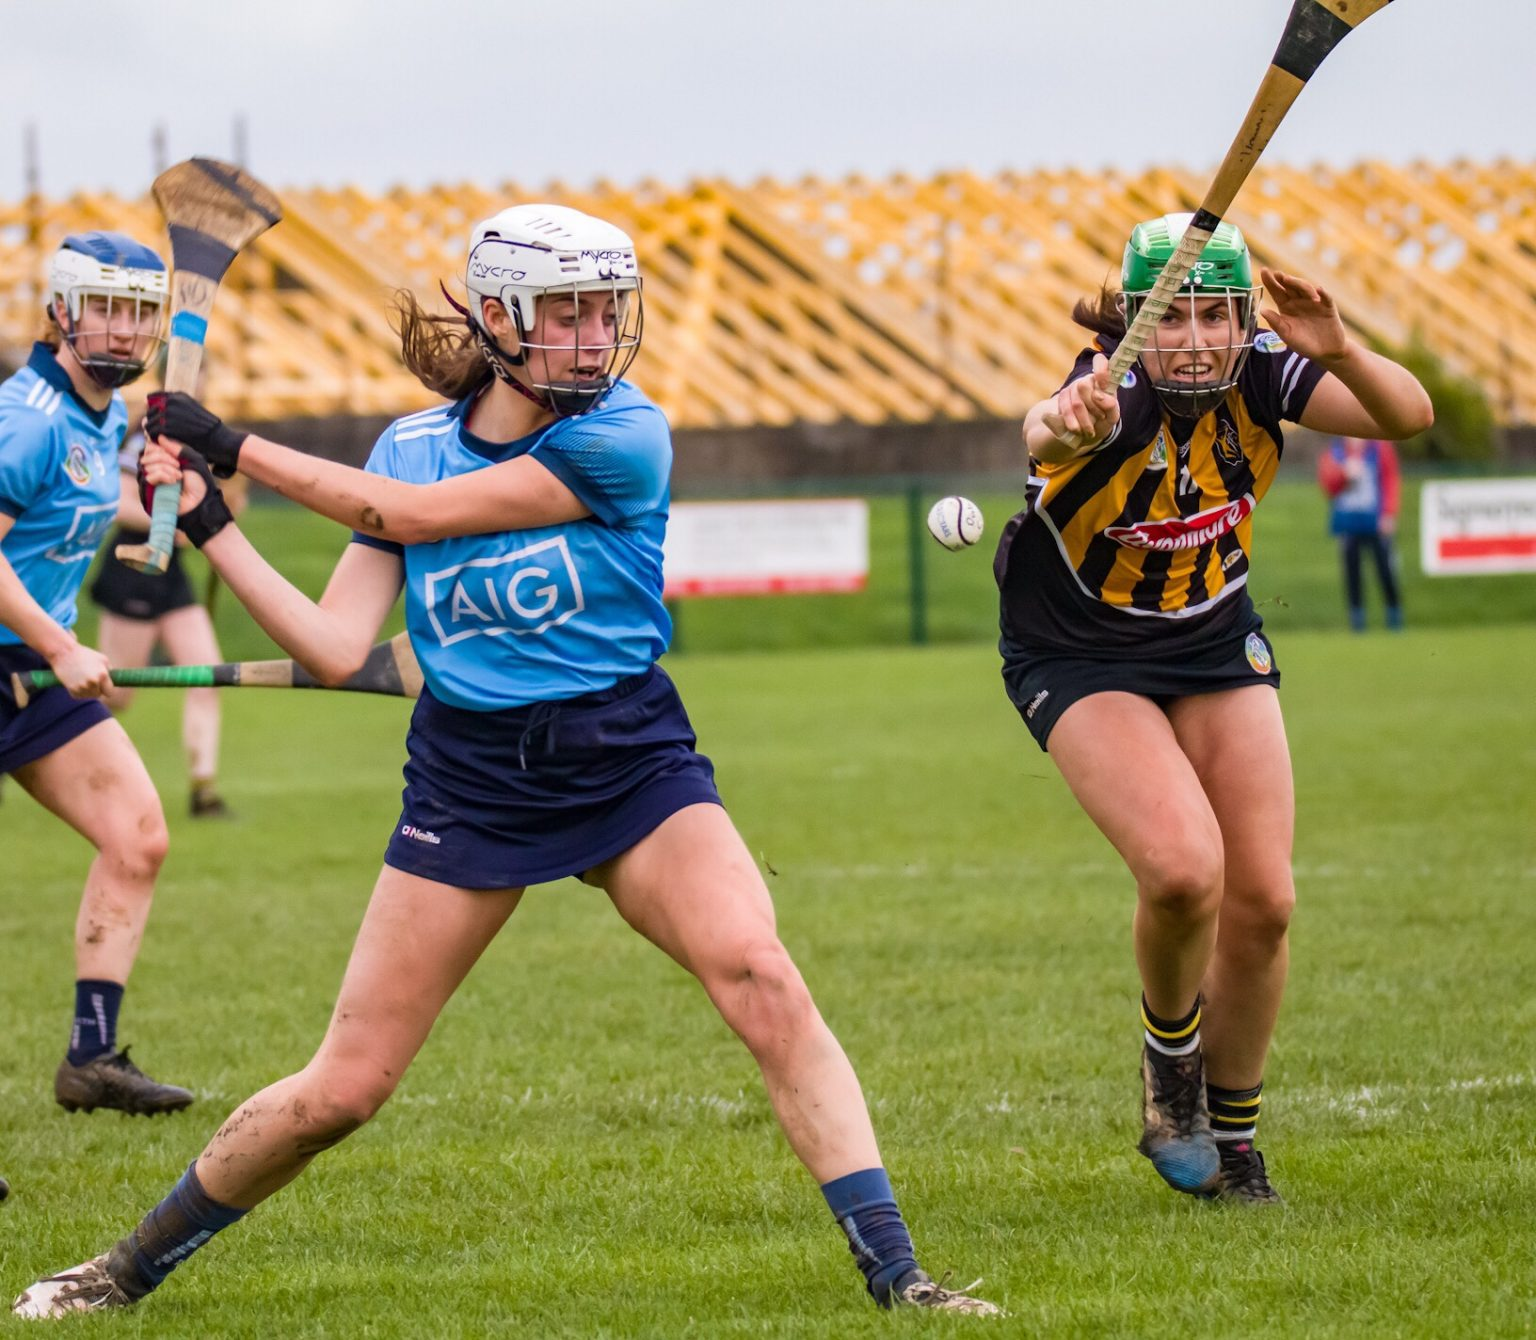 Dublin Senior Camogie Player in a sky blue jersey and navy skort striking the ball with her hurl